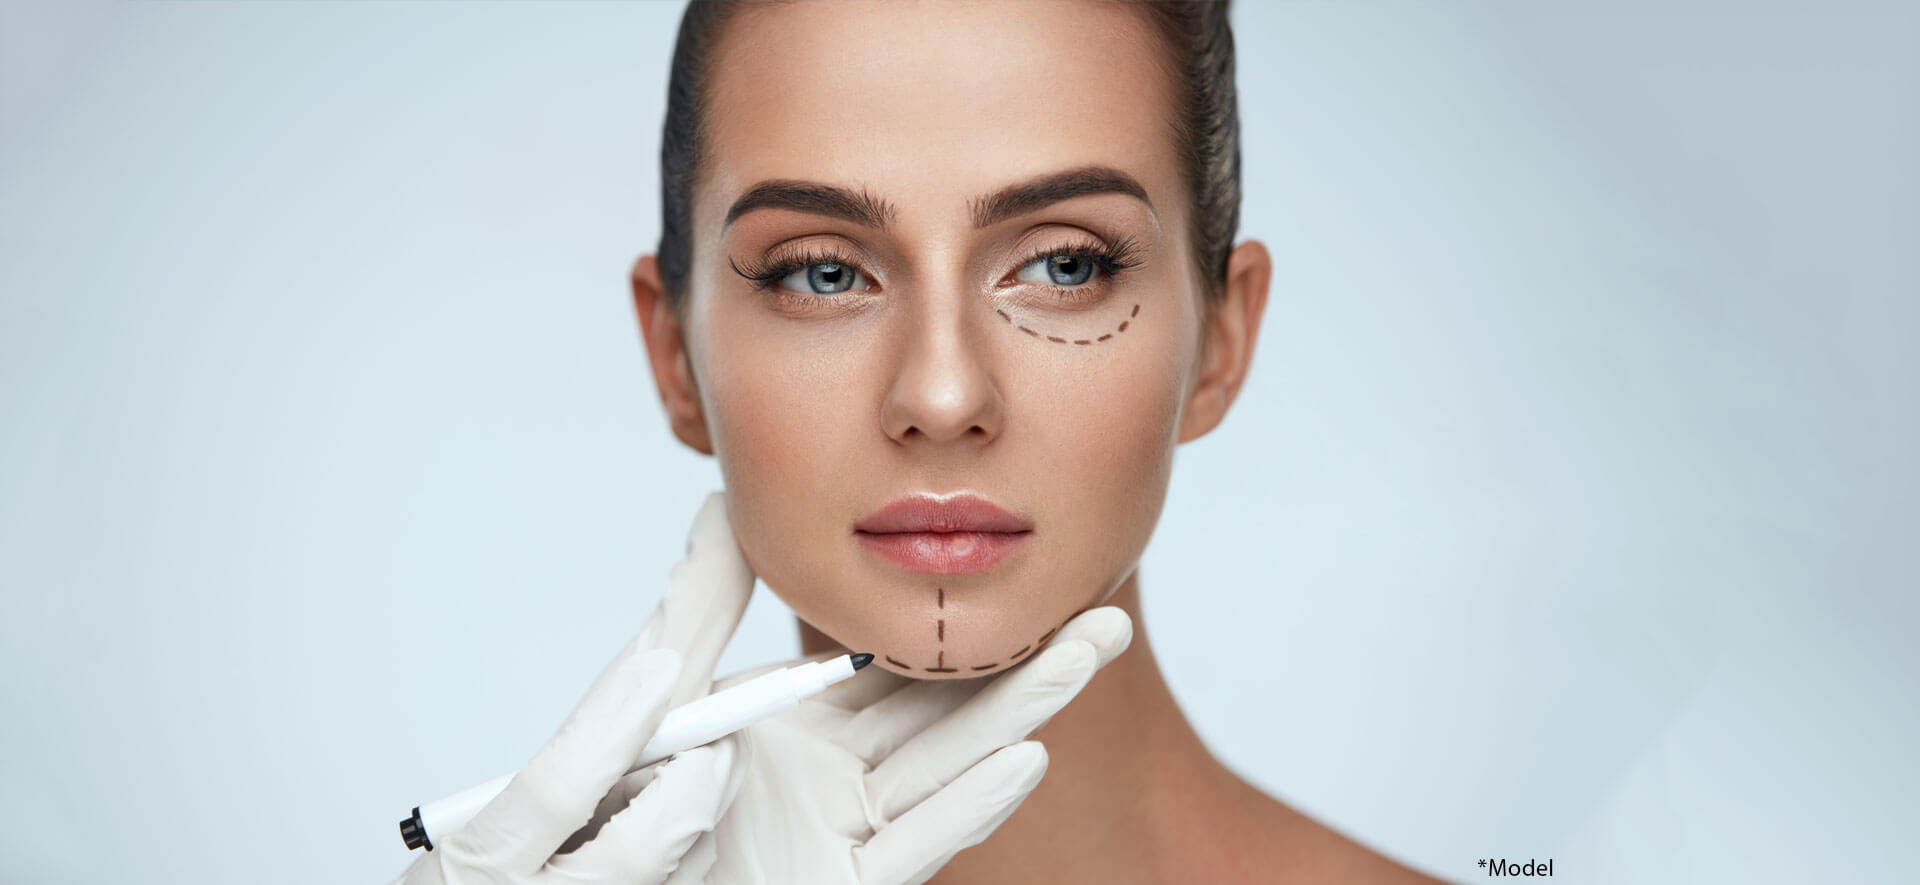 Beautician drawing surgical lines on woman face